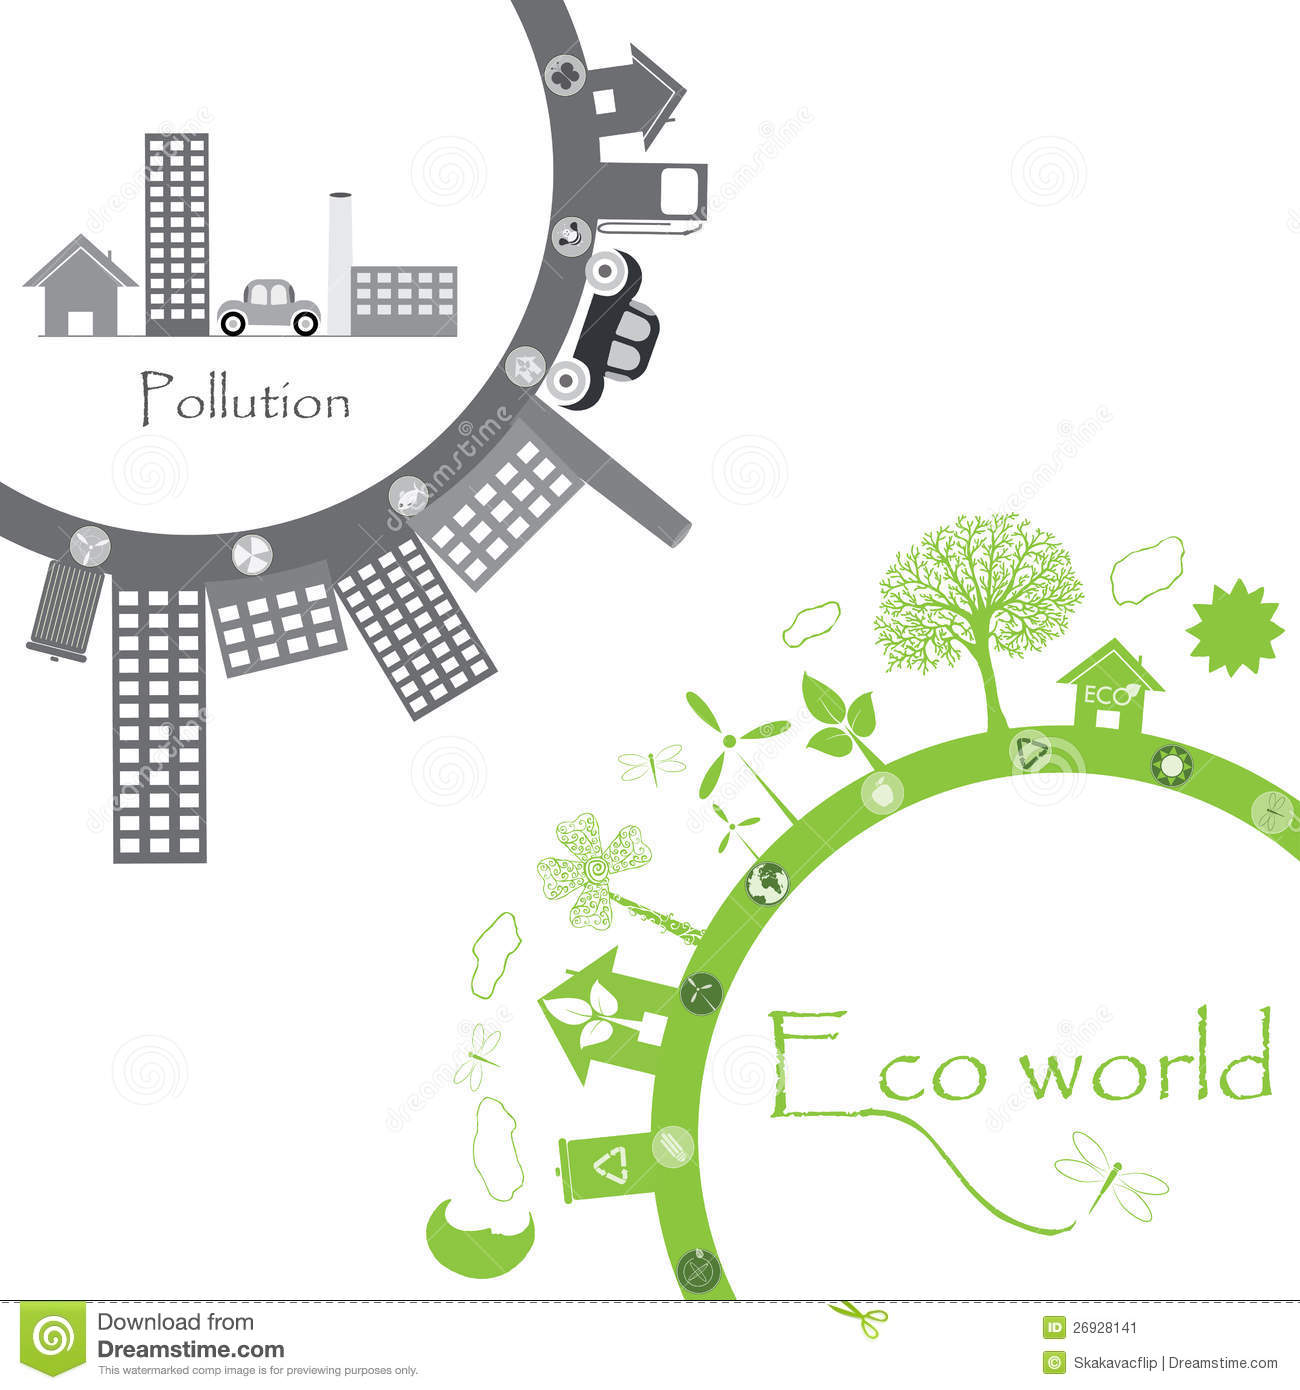 Green Life Vs Pollution Stock Image  Image 26928141